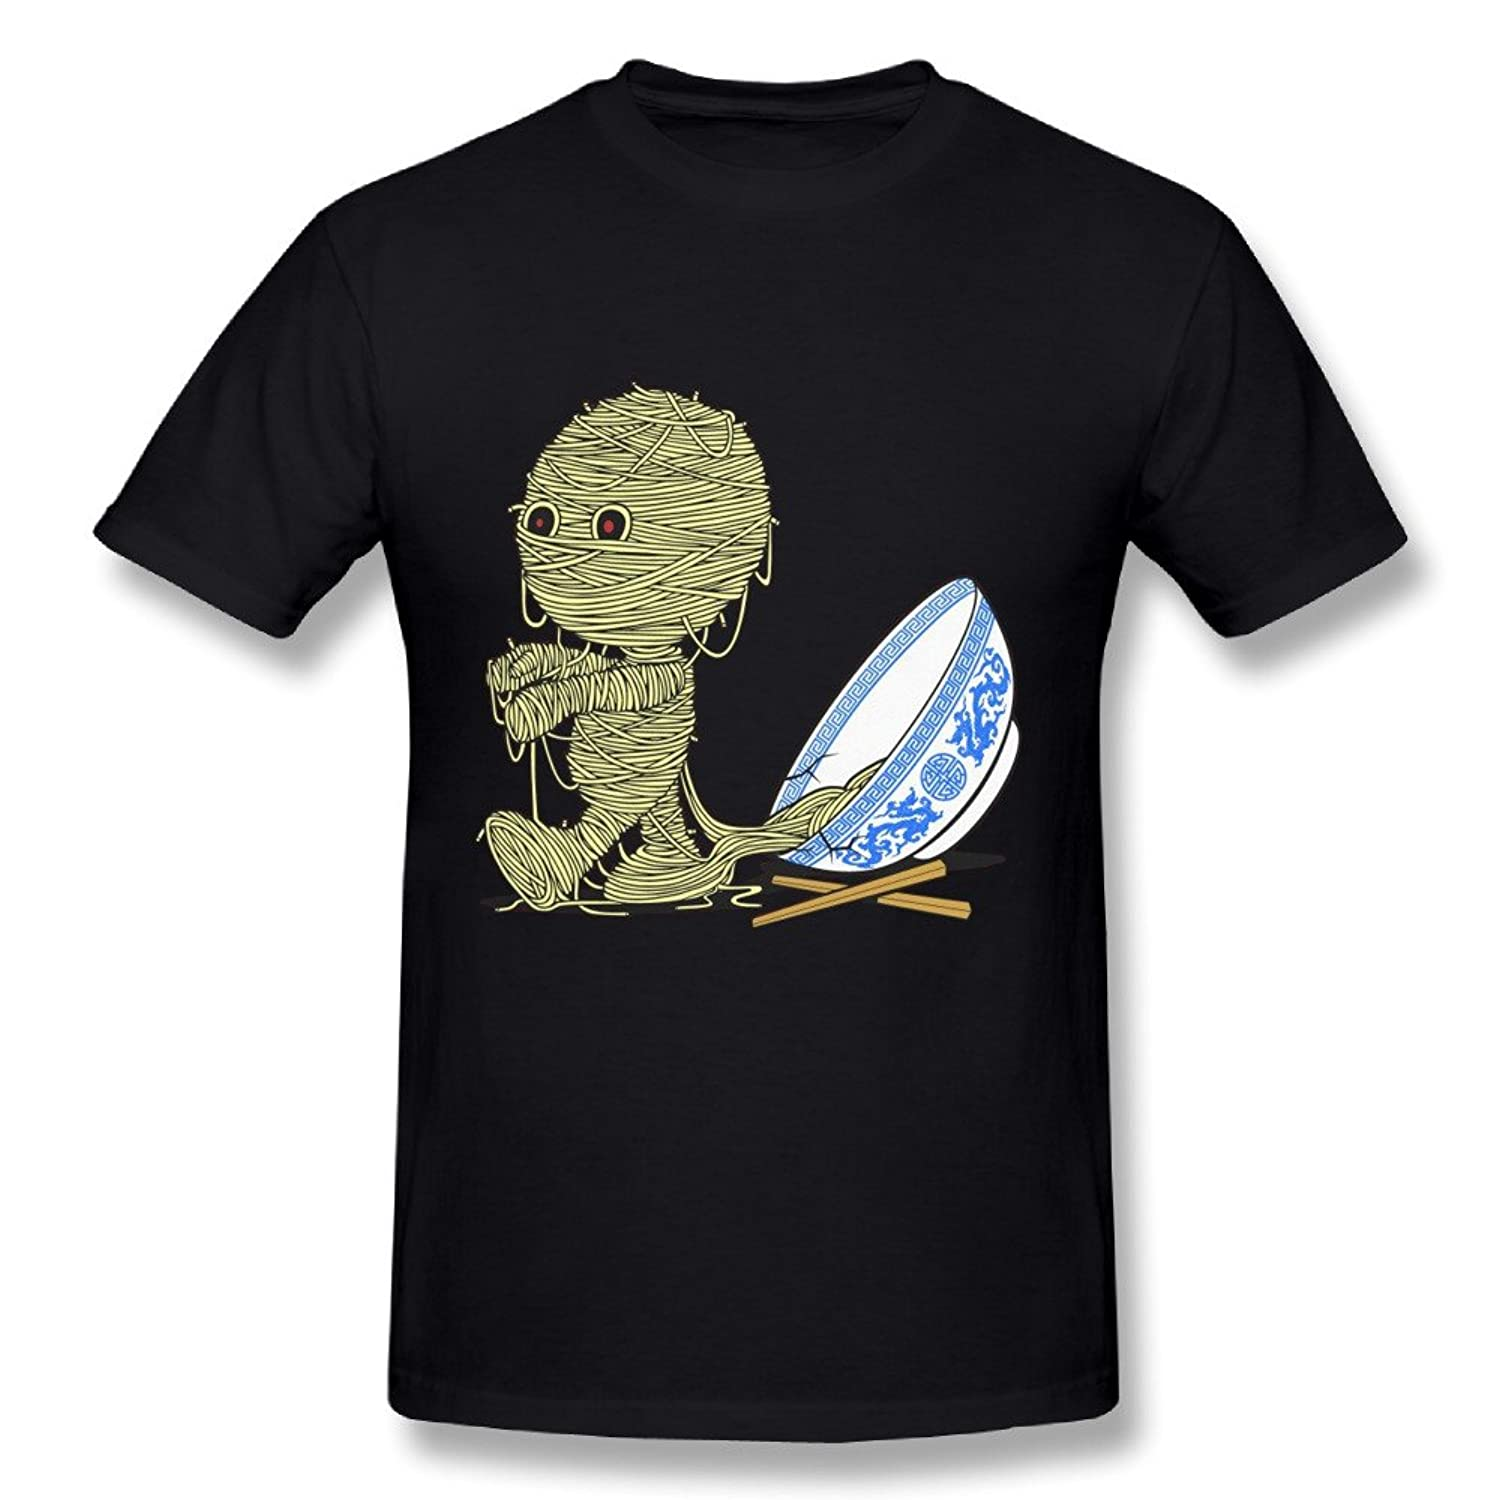 Ramen Mummy Return Man Short Sleeve Tshirt Black